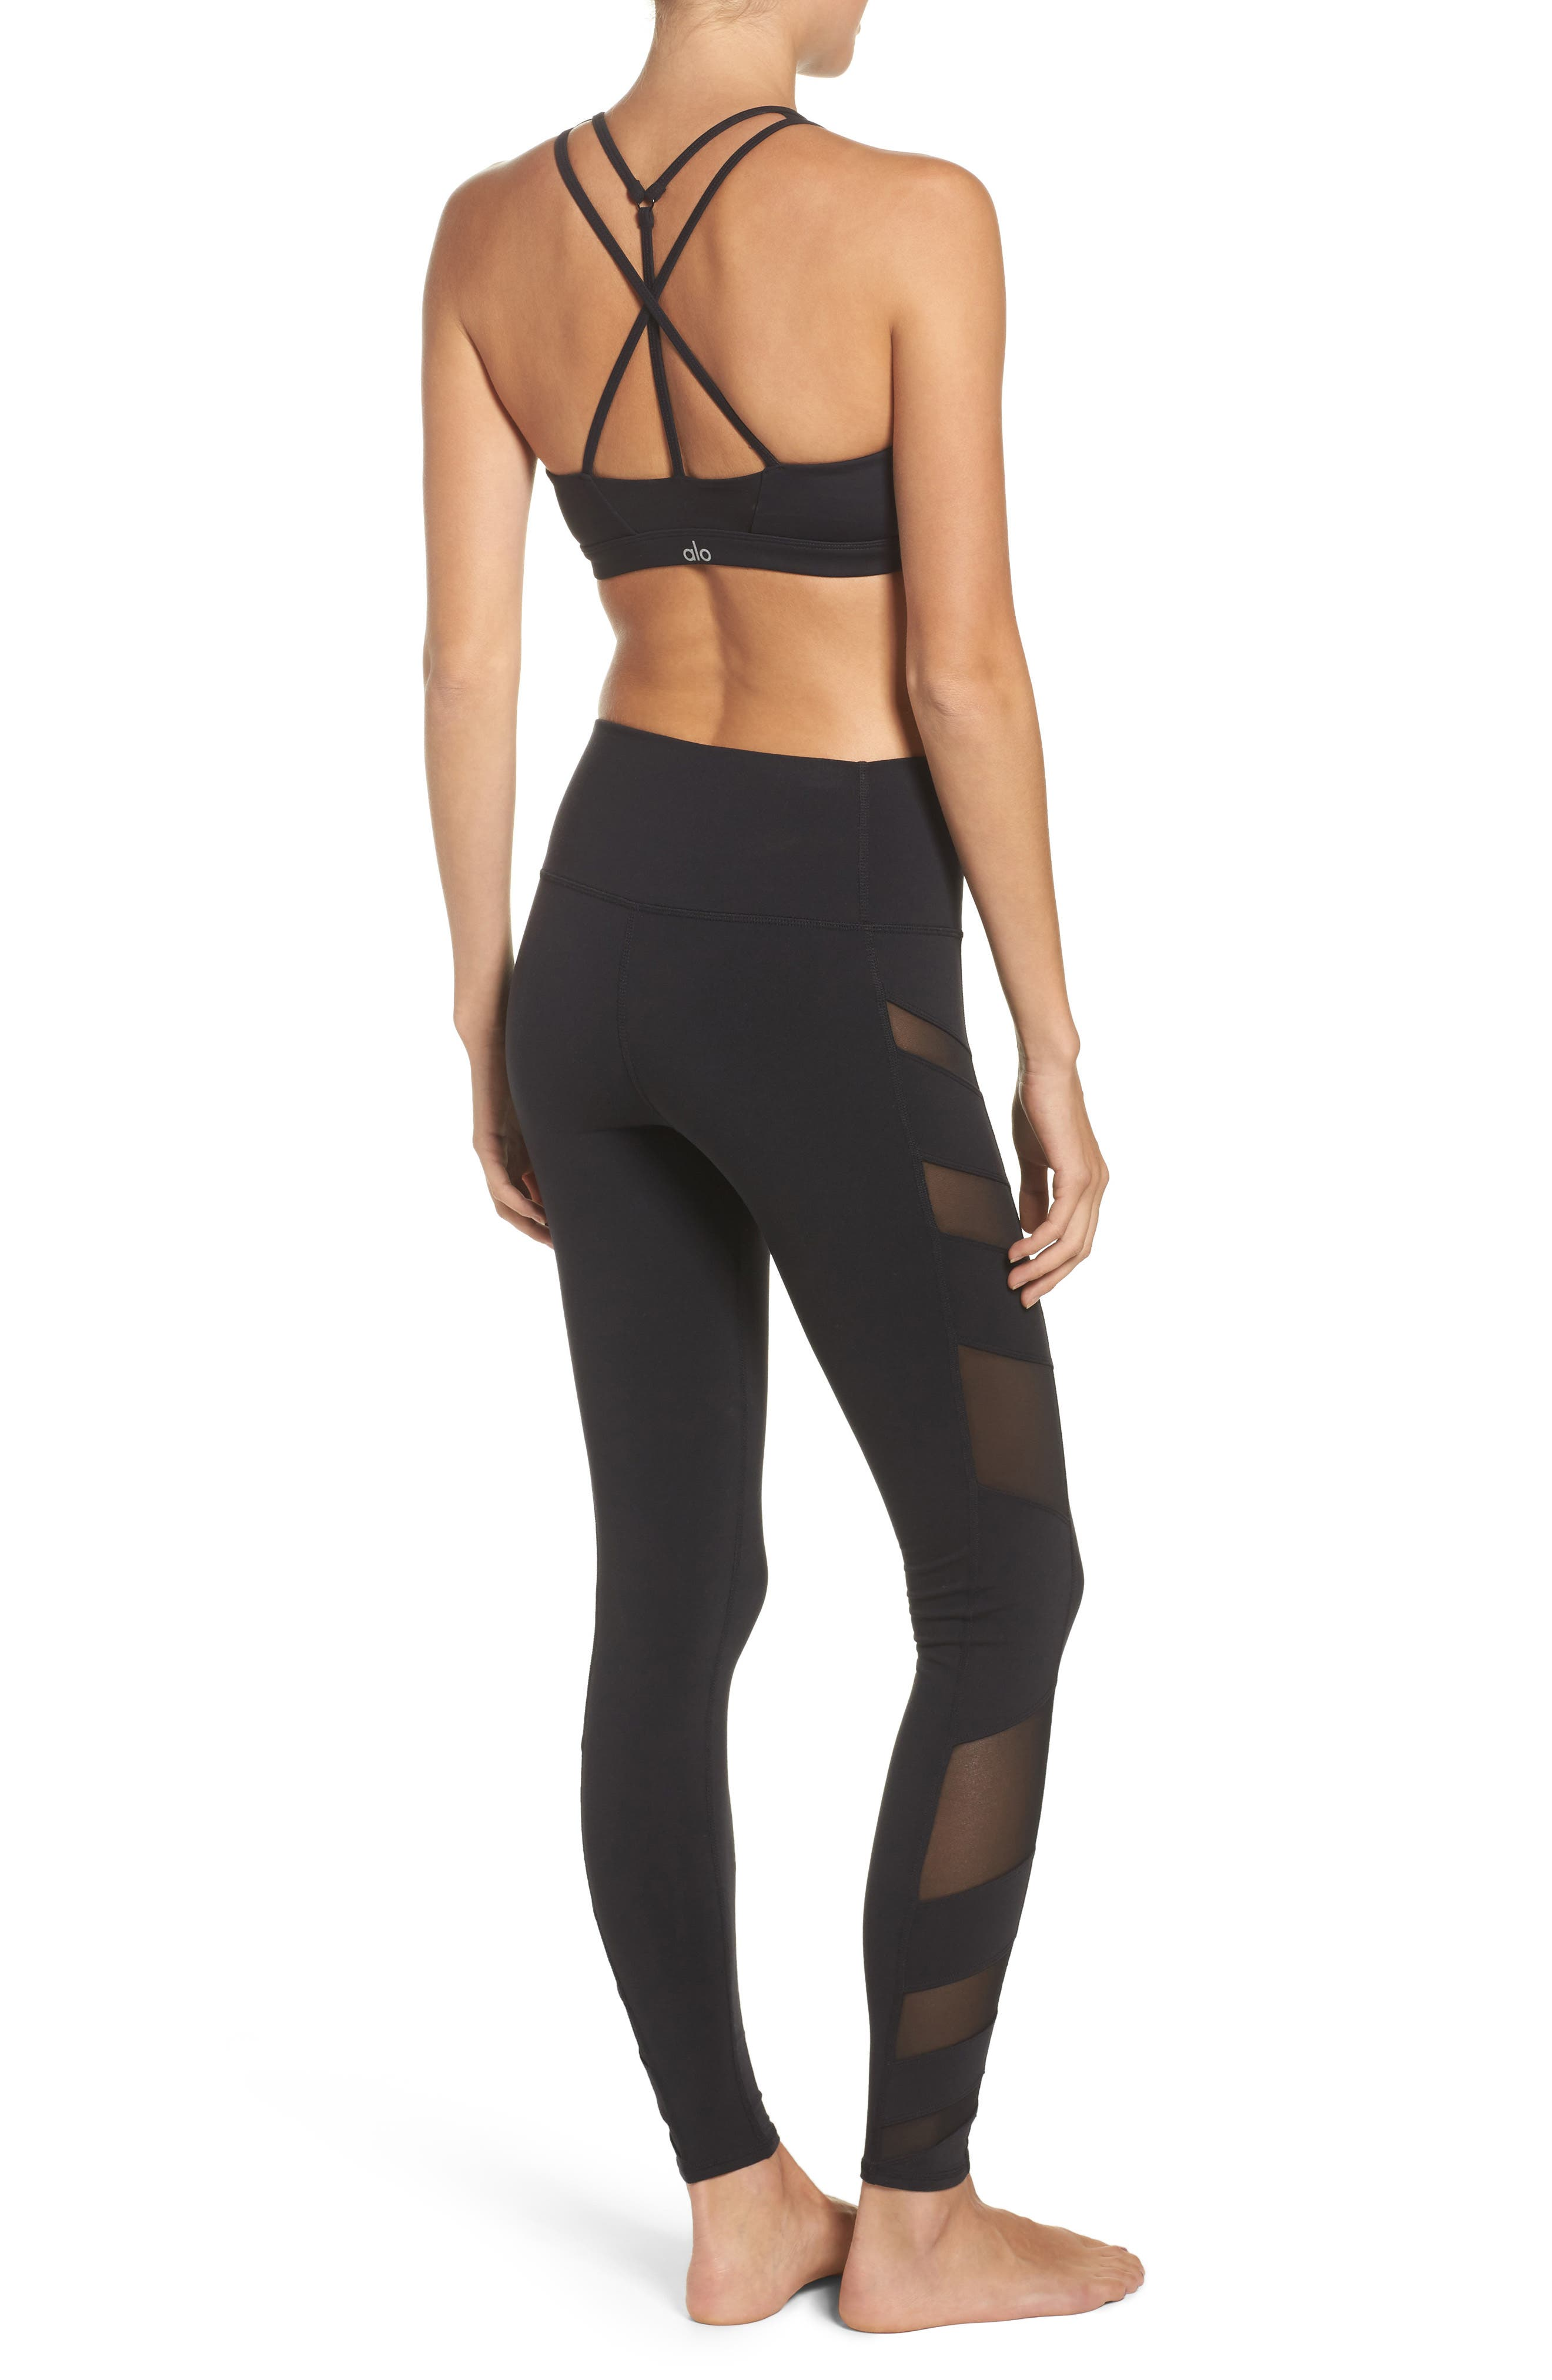 Block High Waist Mesh Inset Leggings,                             Alternate thumbnail 9, color,                             001